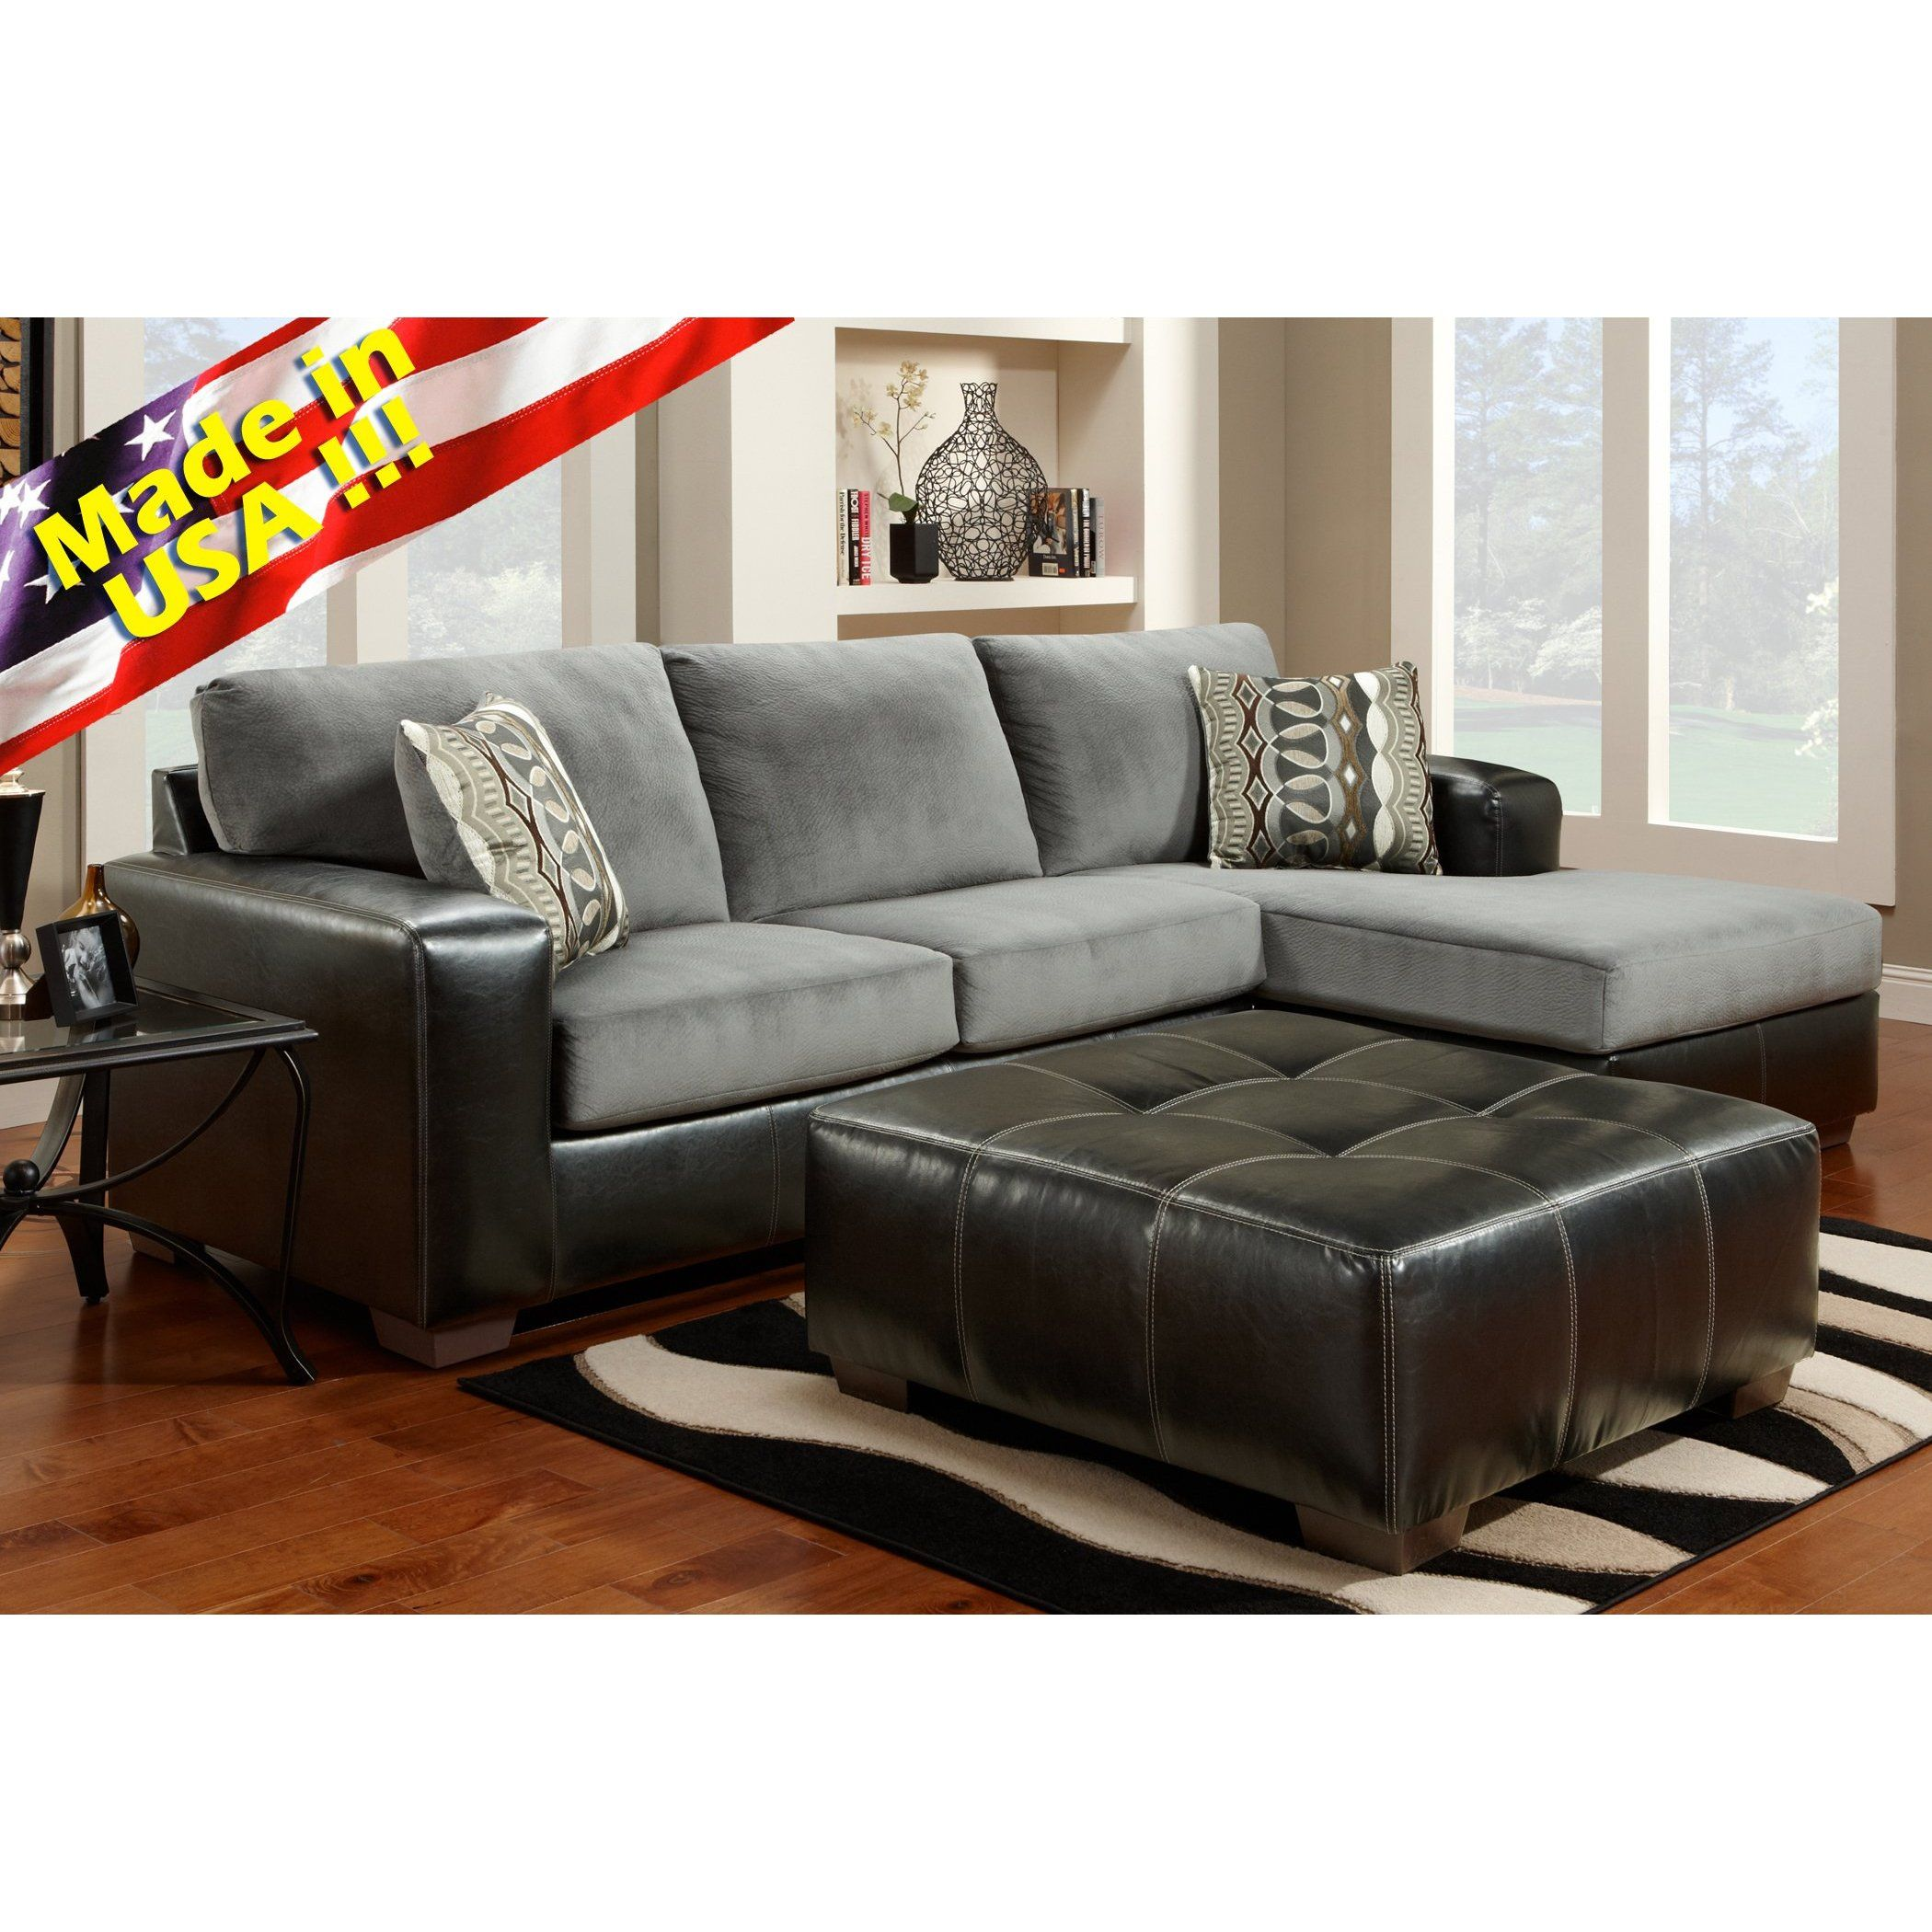 Best Cumulus Black Gray Two Toned Sectional Sofa Chaise Set 640 x 480